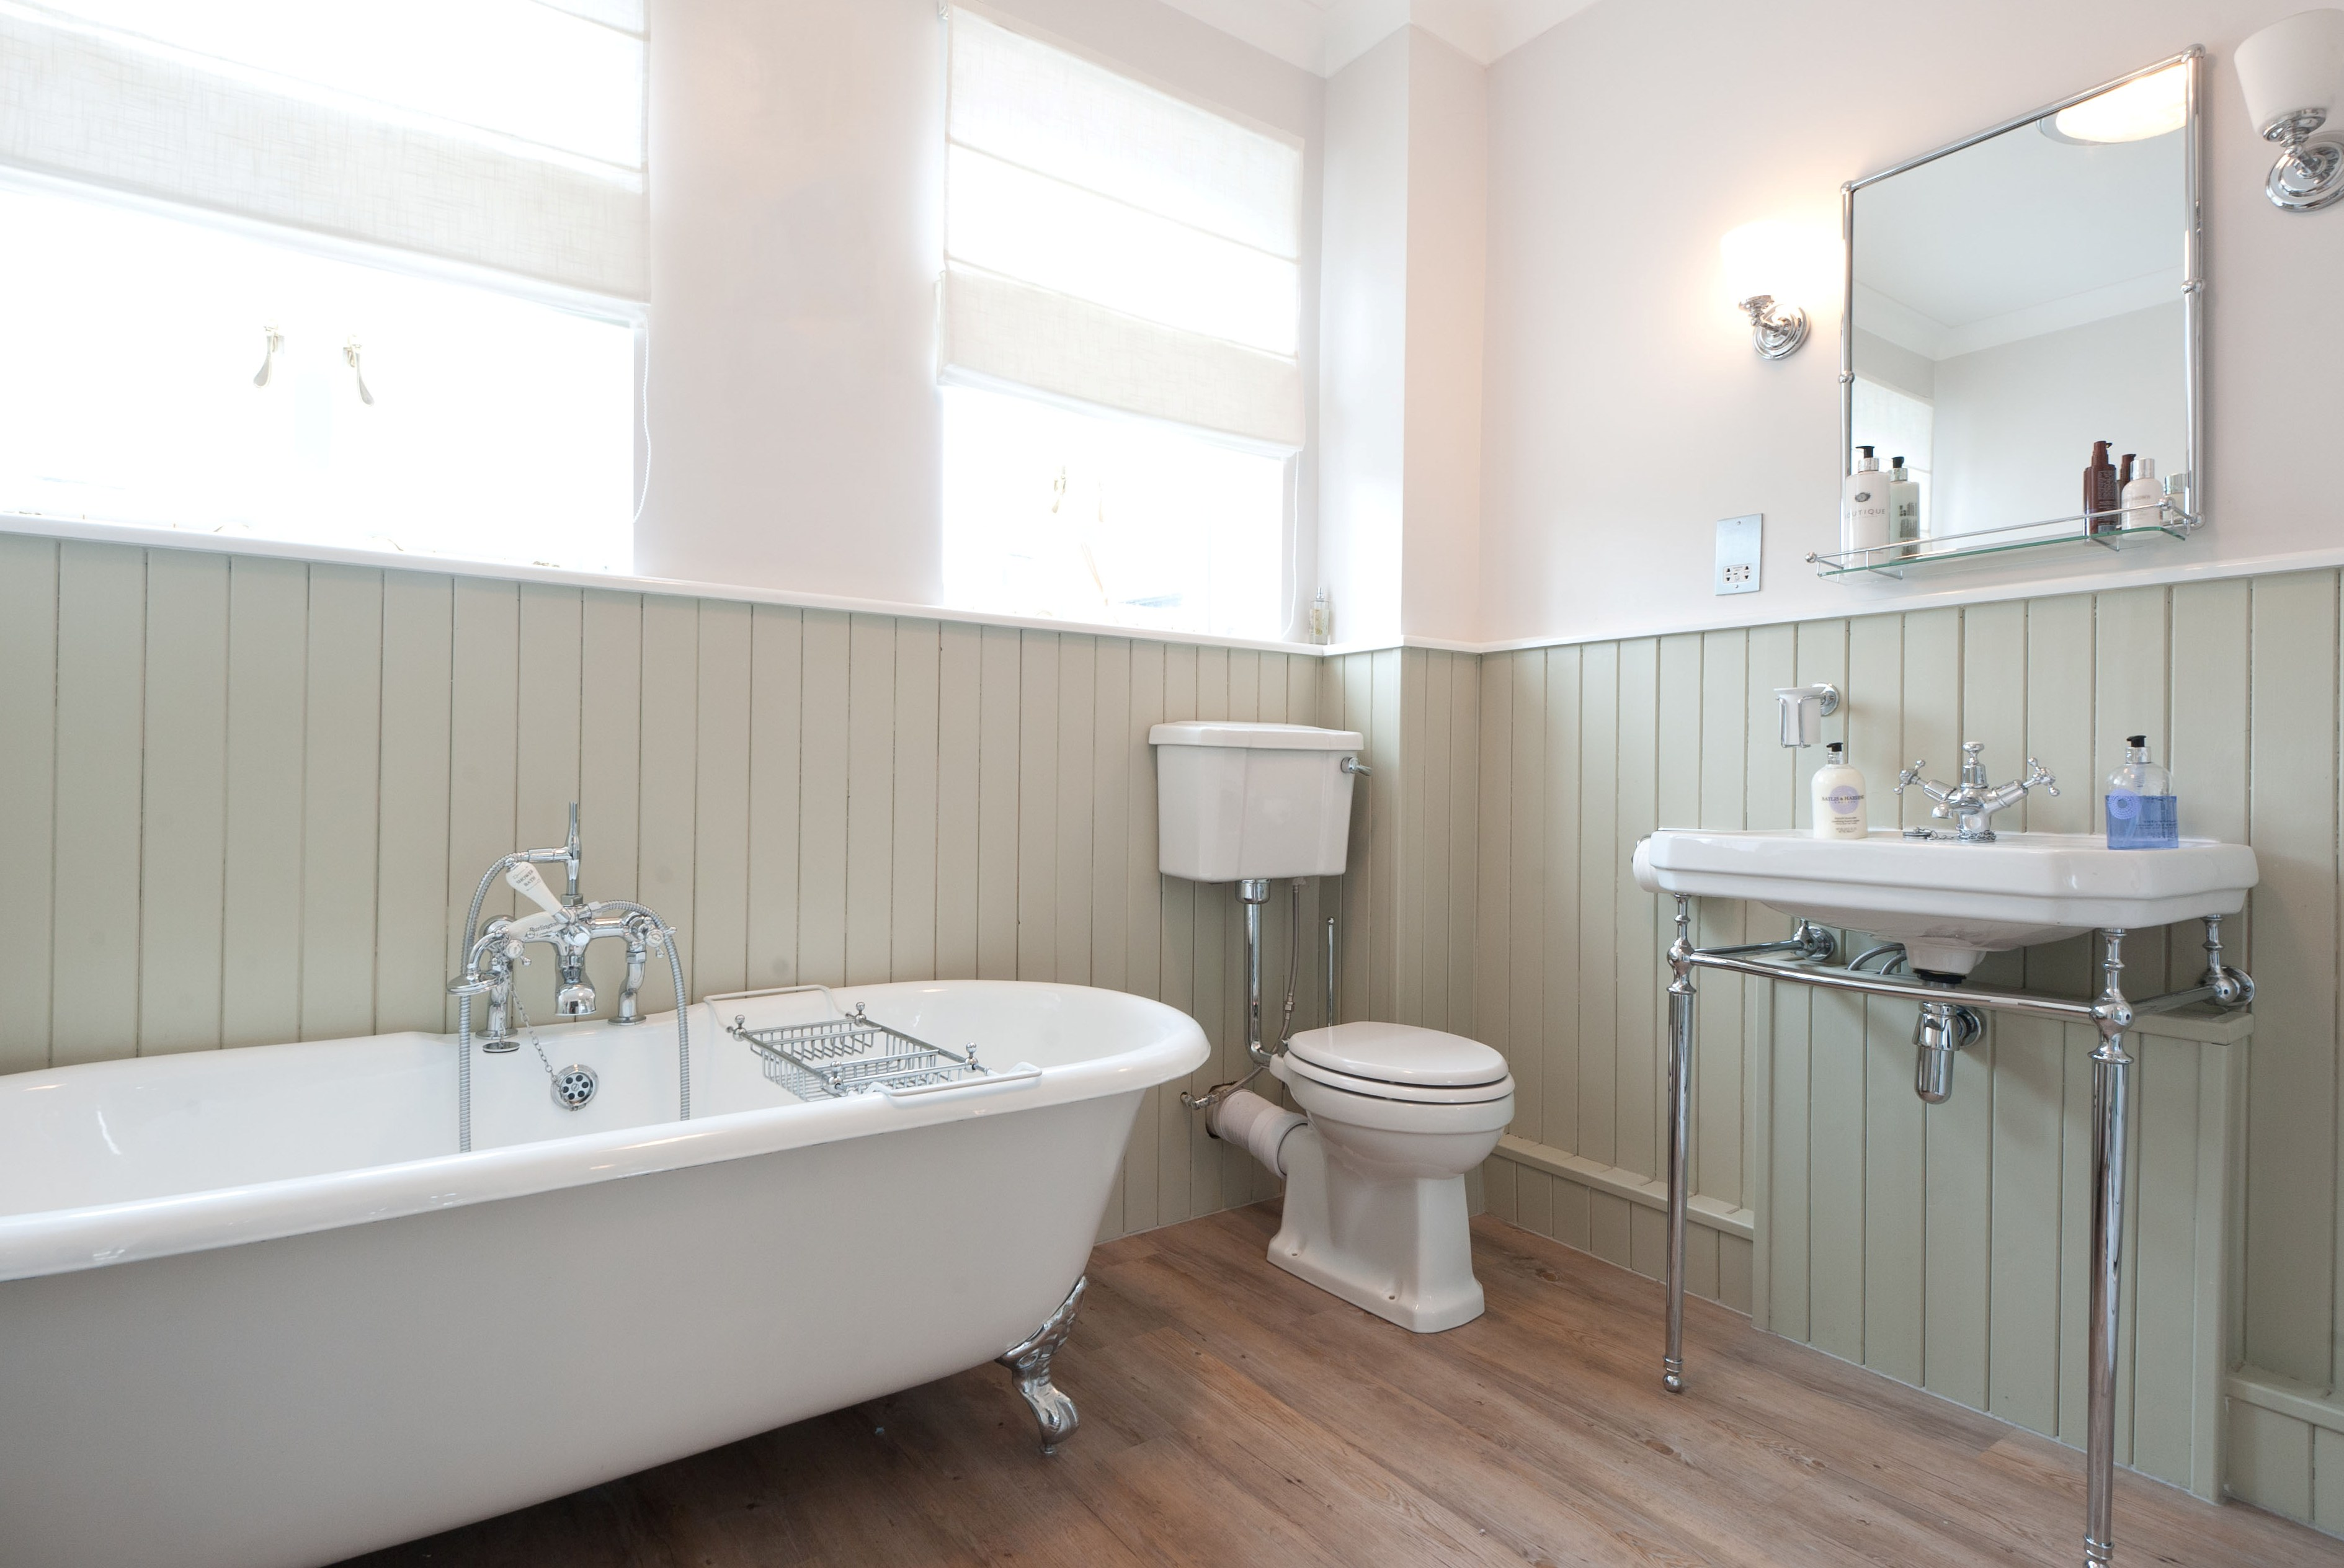 </p> <p>Find your ideal home design pro on designfor-me.com - get matched and see who's interested in your home project. Click image to see more inspiration from our design pros</p> <p>Design by Toby, architectural designer from Wandsworth, London</p> <p>#architecture #homedesign #modernhomes #homeinspiration #renovation #bathrooms #bathroomdesign #bathroominspiration #bathroomideas </p> <p>